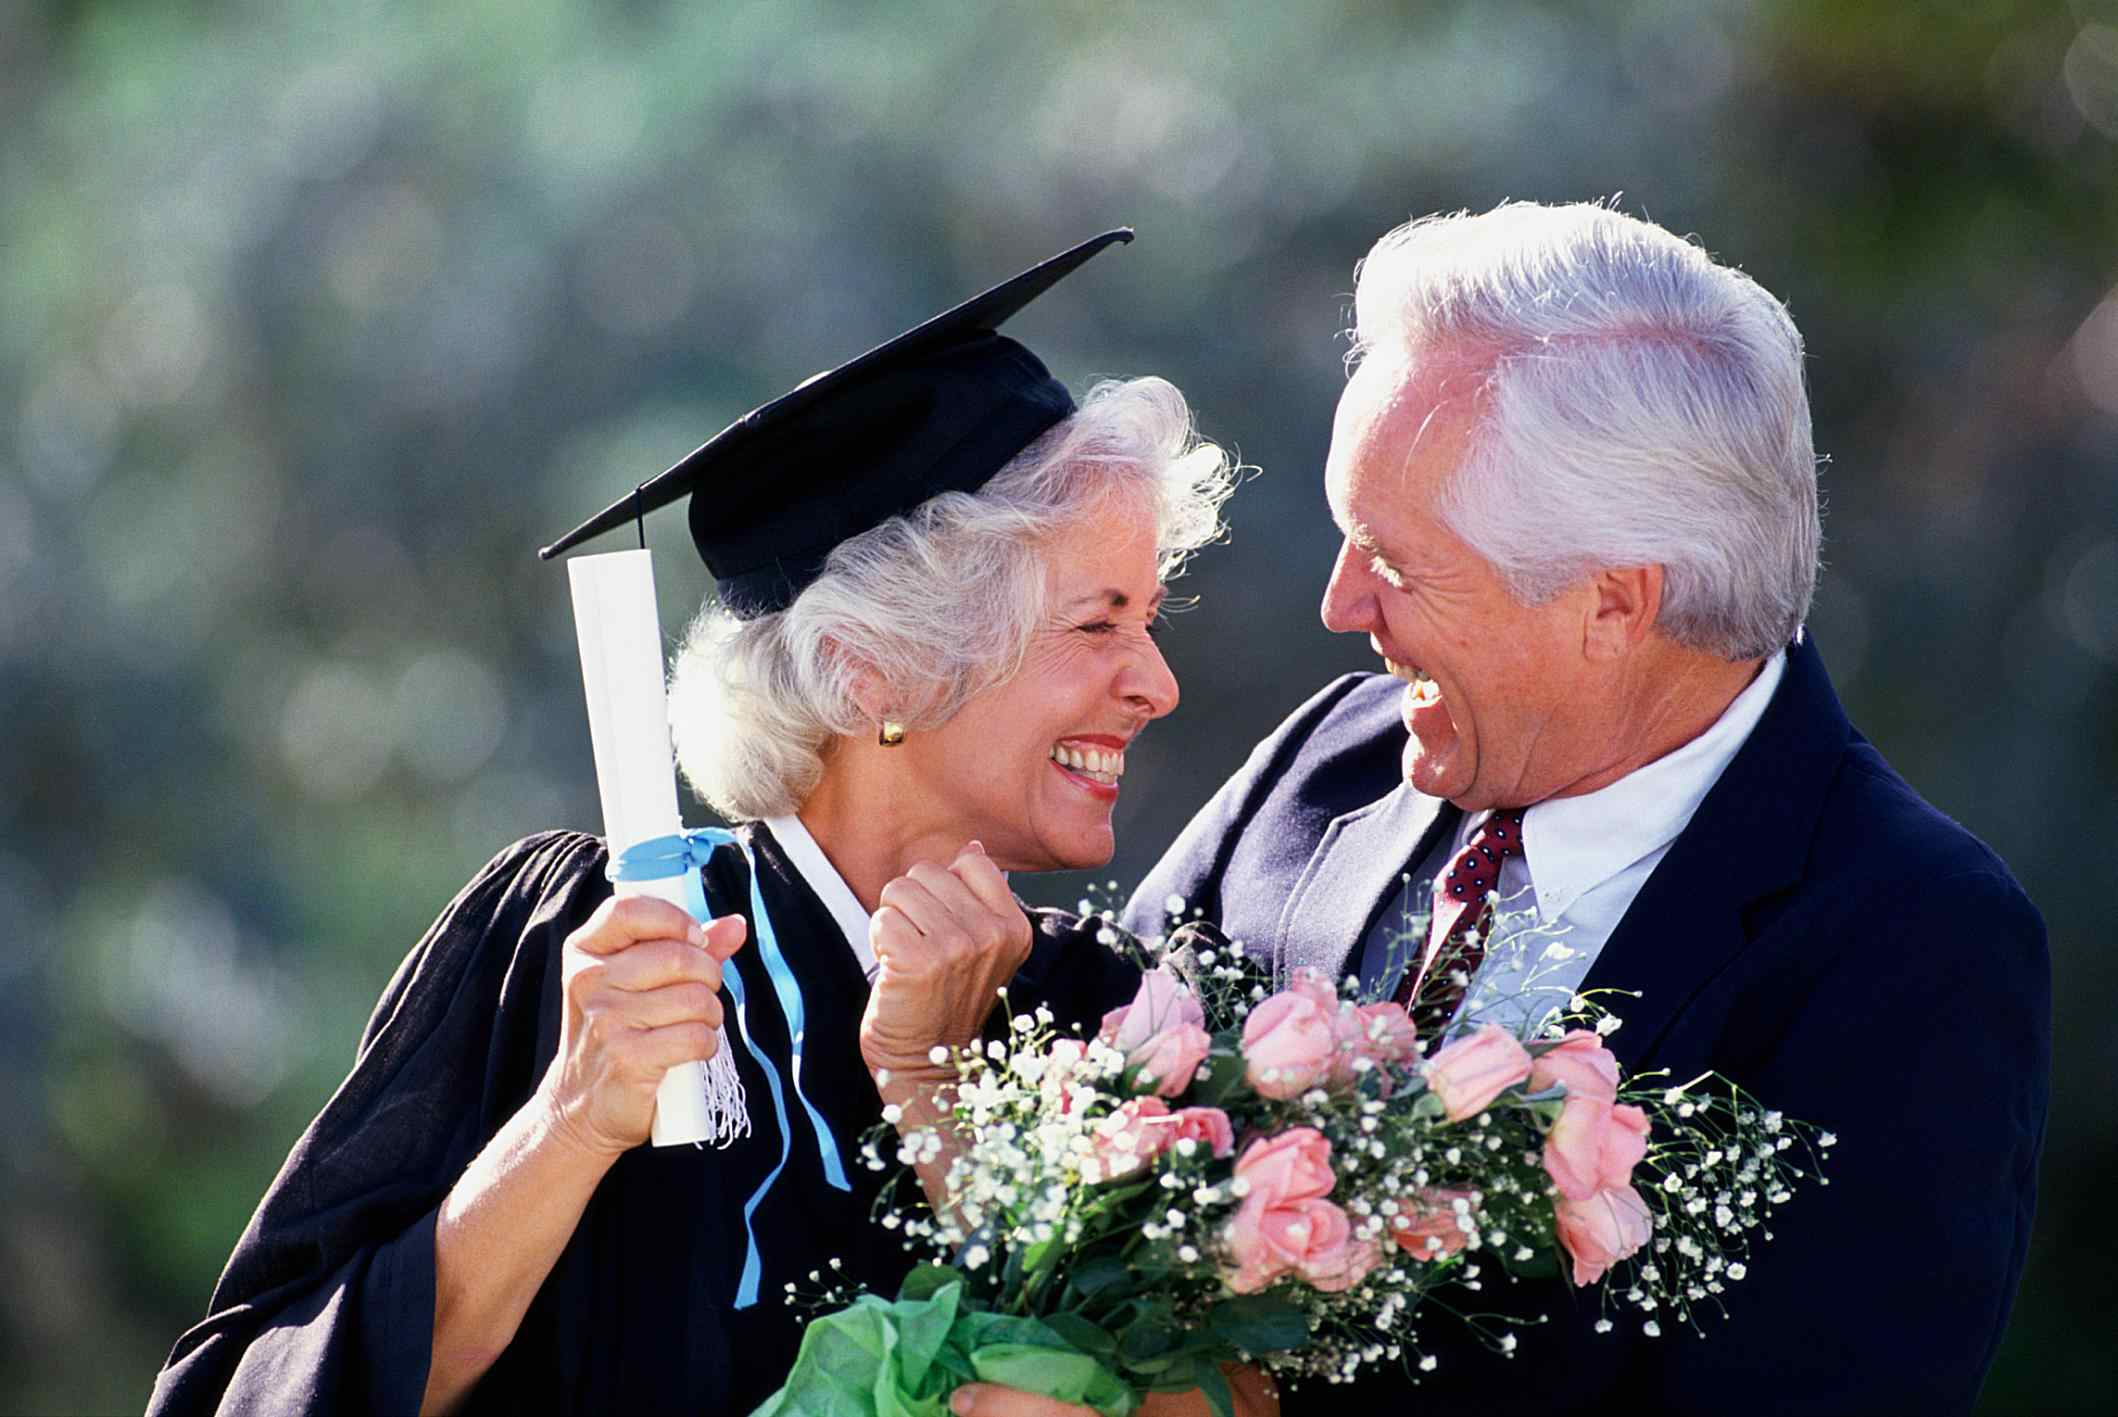 Graduation by Yellow Dog Productions - Getty Images